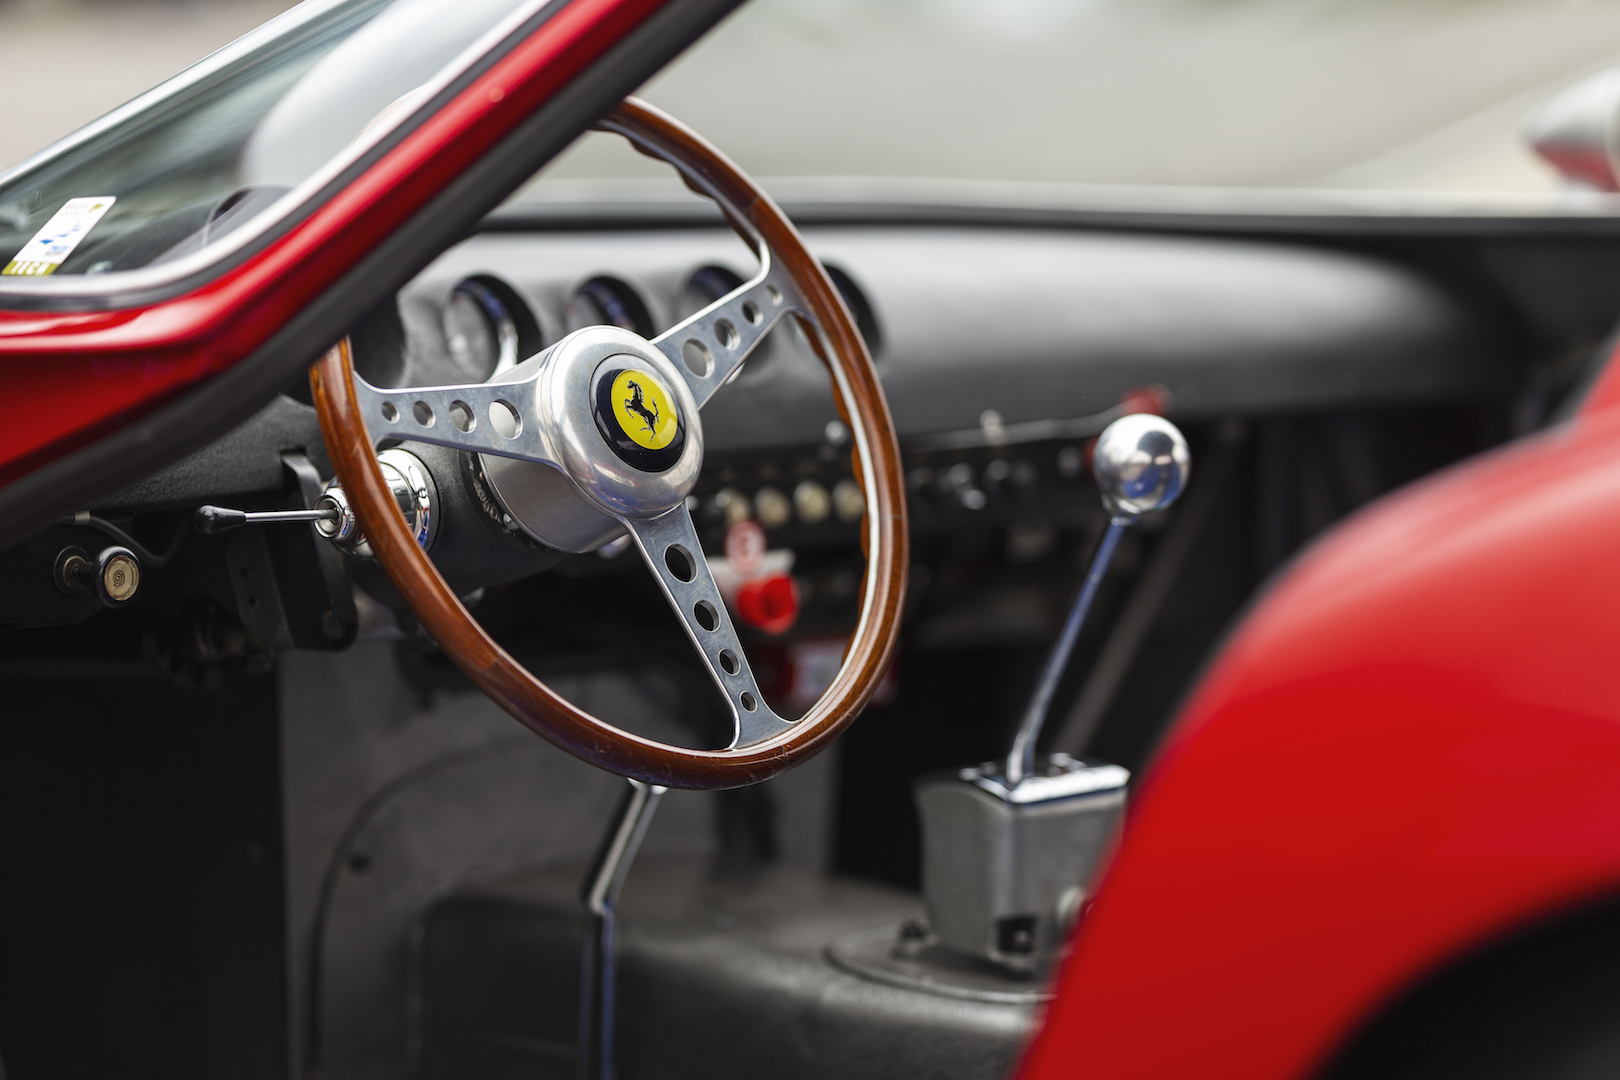 Take to the Road News 1962 Ferrari 250 GTO breaks world record with RM Sotheby's in Monterey